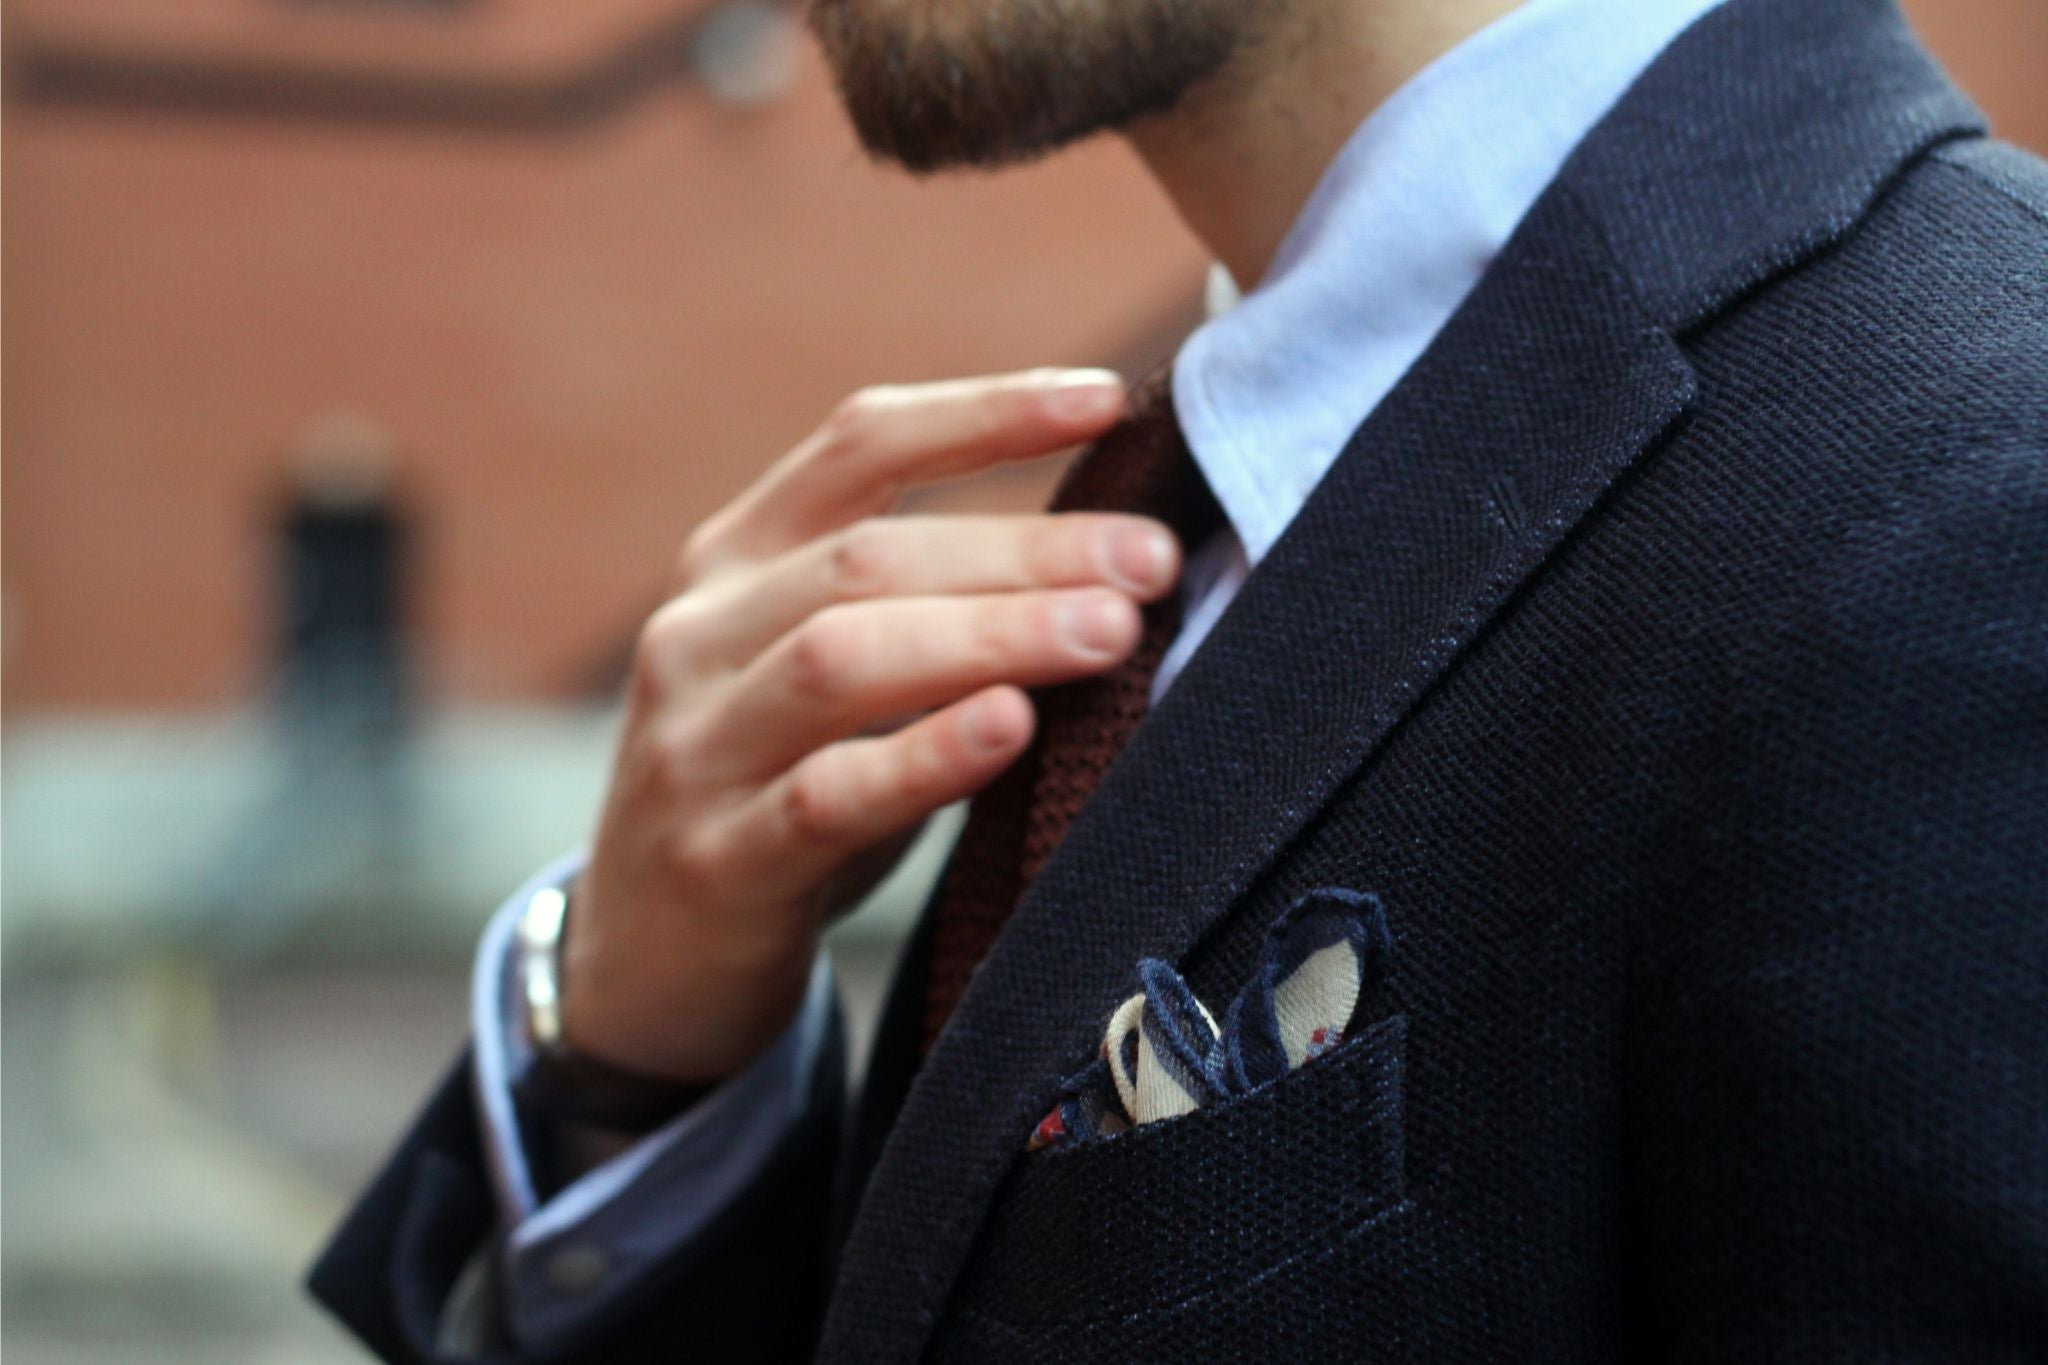 Blue jersey sport coat with corduroy trousers - pocket square details